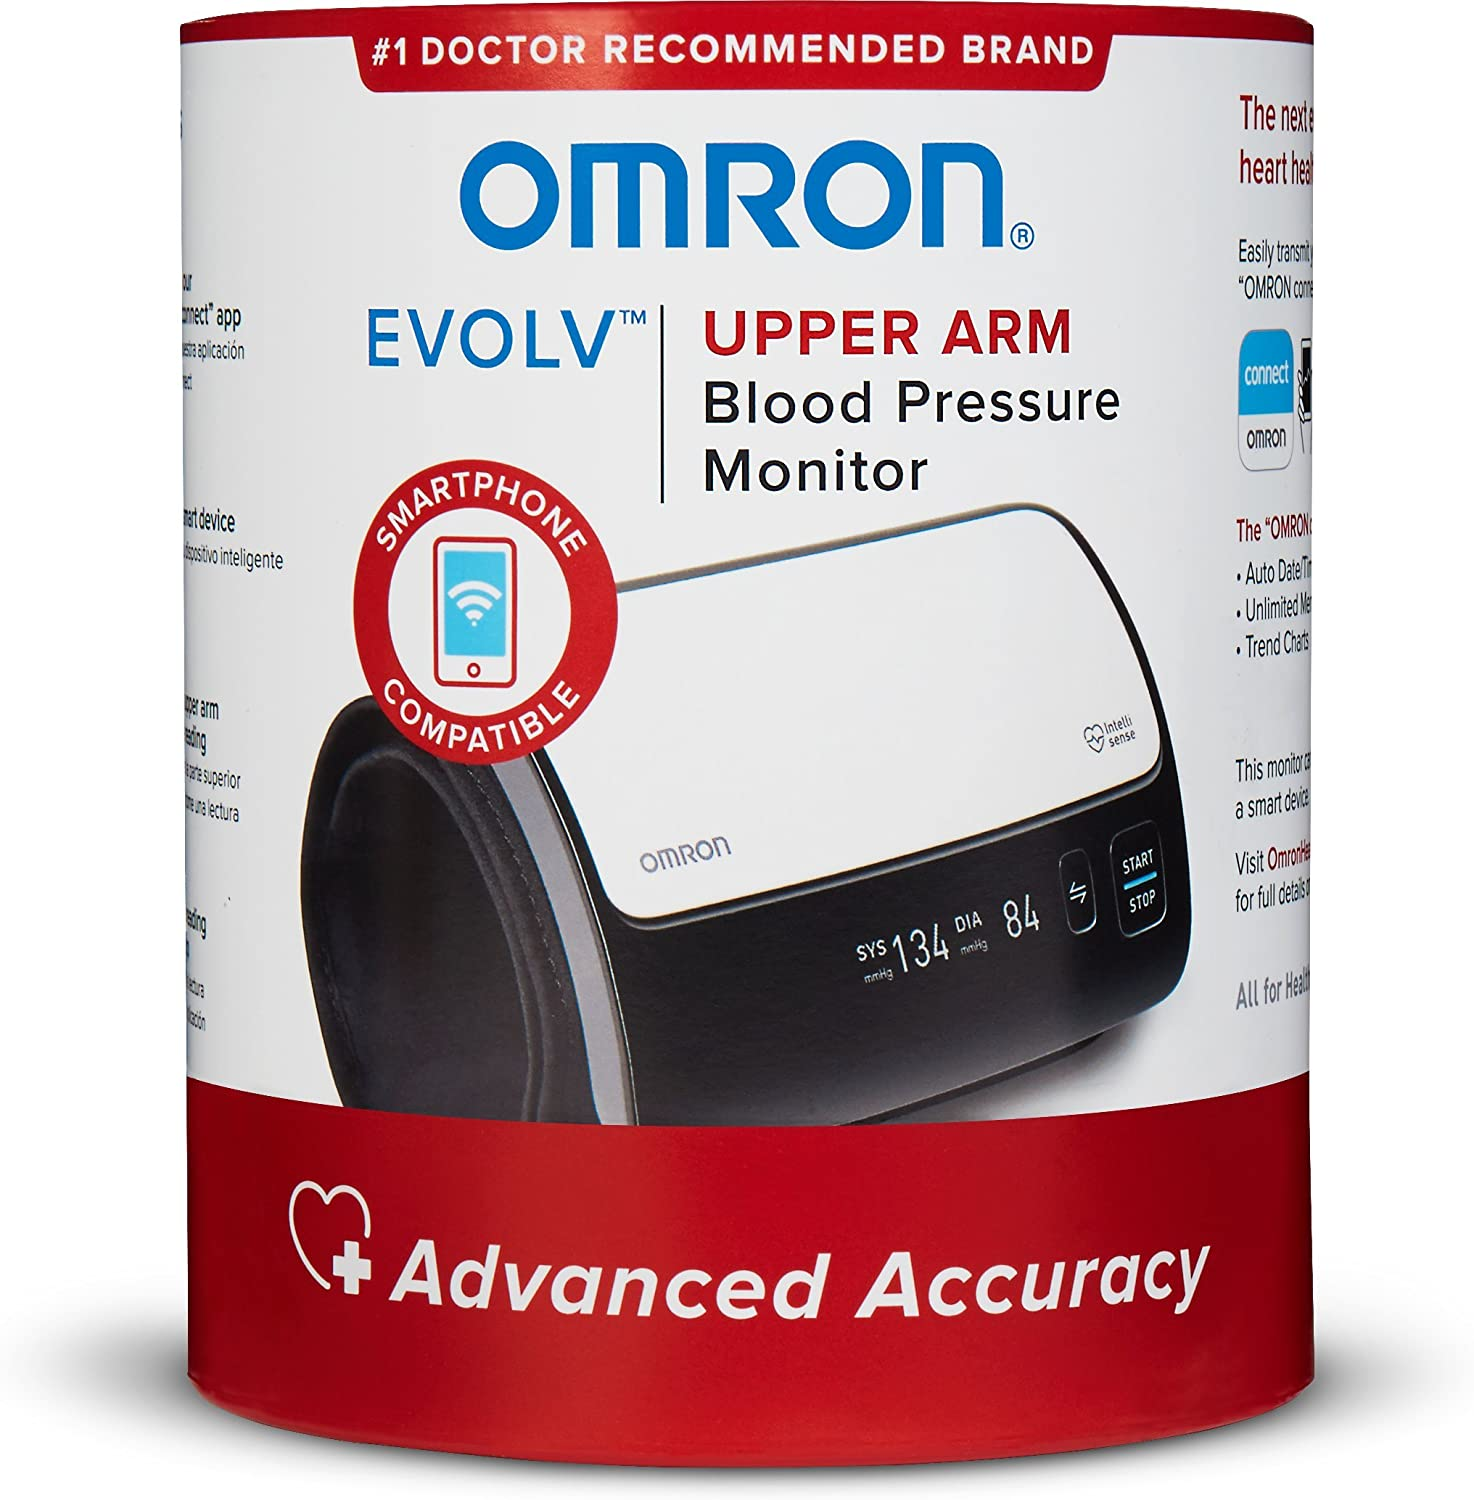 Omron Evolv Bluetooth Wireless Upper Arm Blood Pressure Monitor With Portable, Onepiece Design – Works with amazon Alexa By Omron